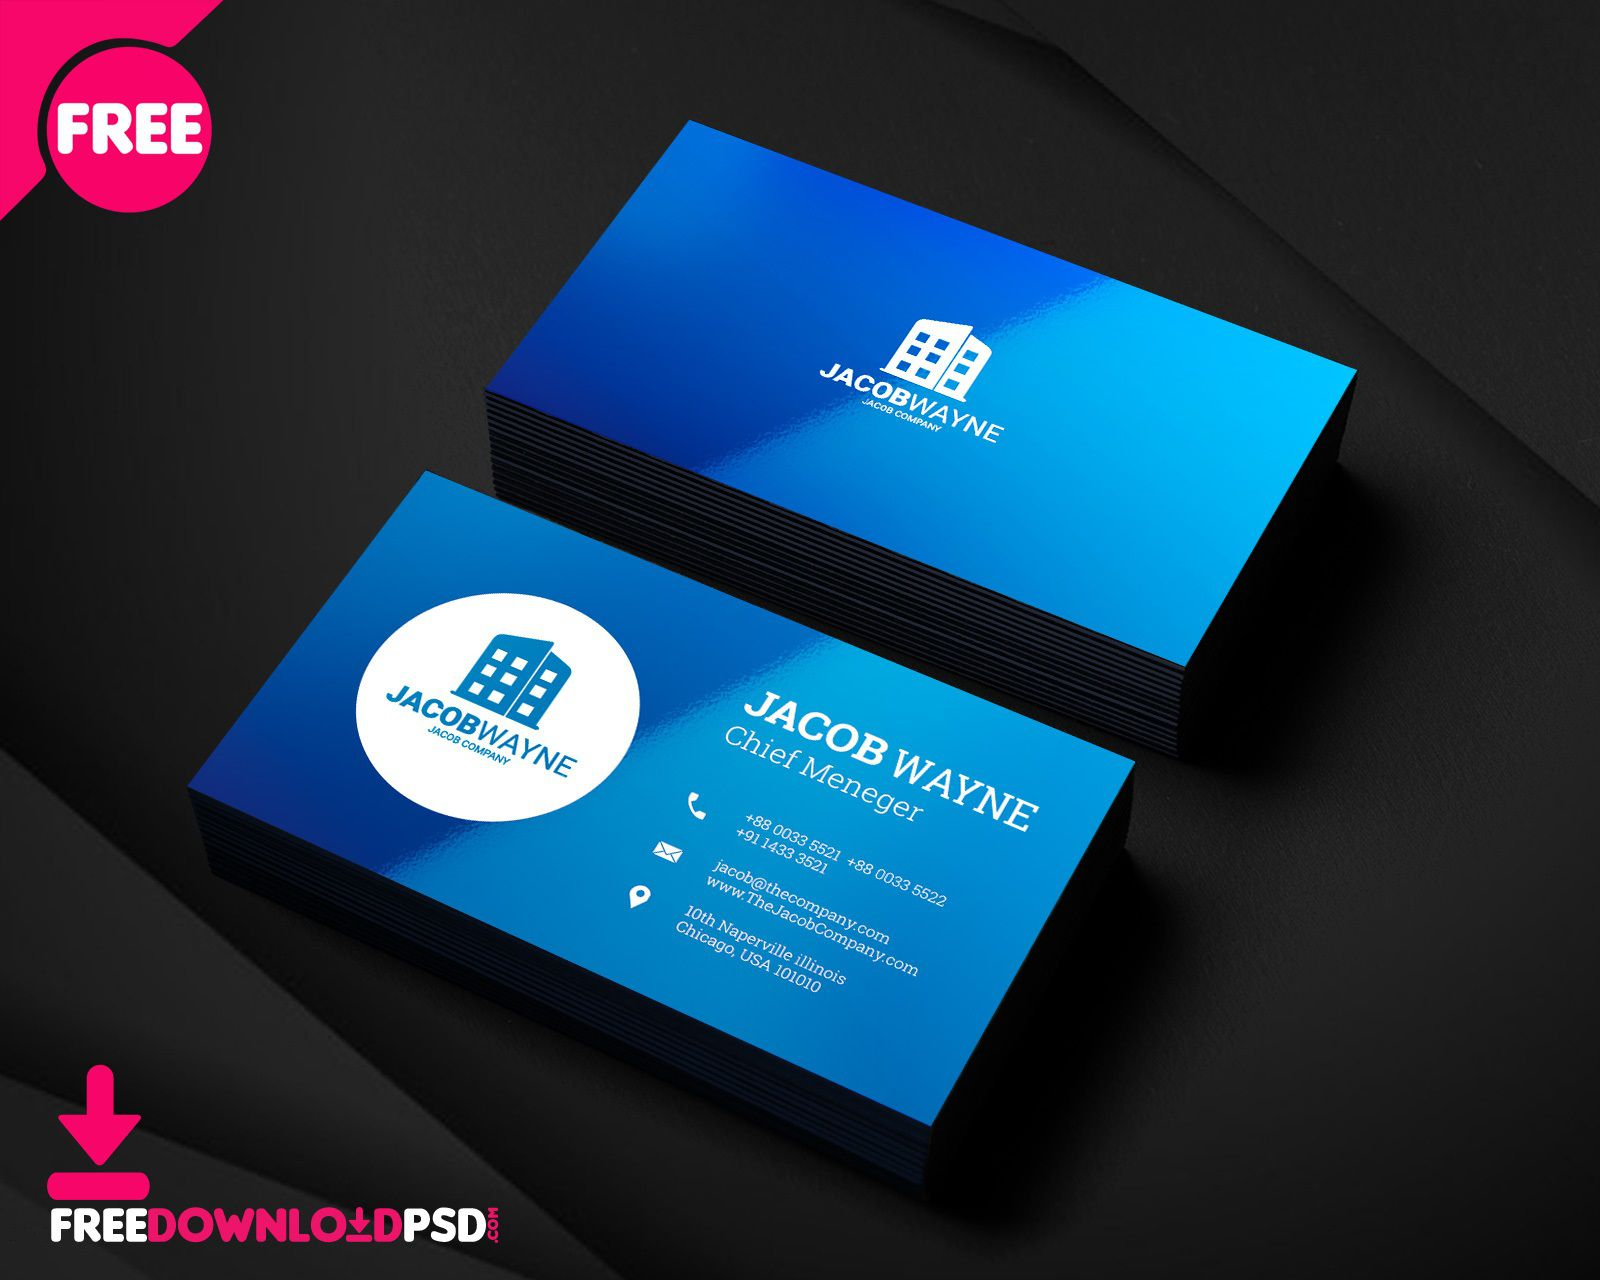 006 Exceptional Free Simple Busines Card Template Word High Definition Full